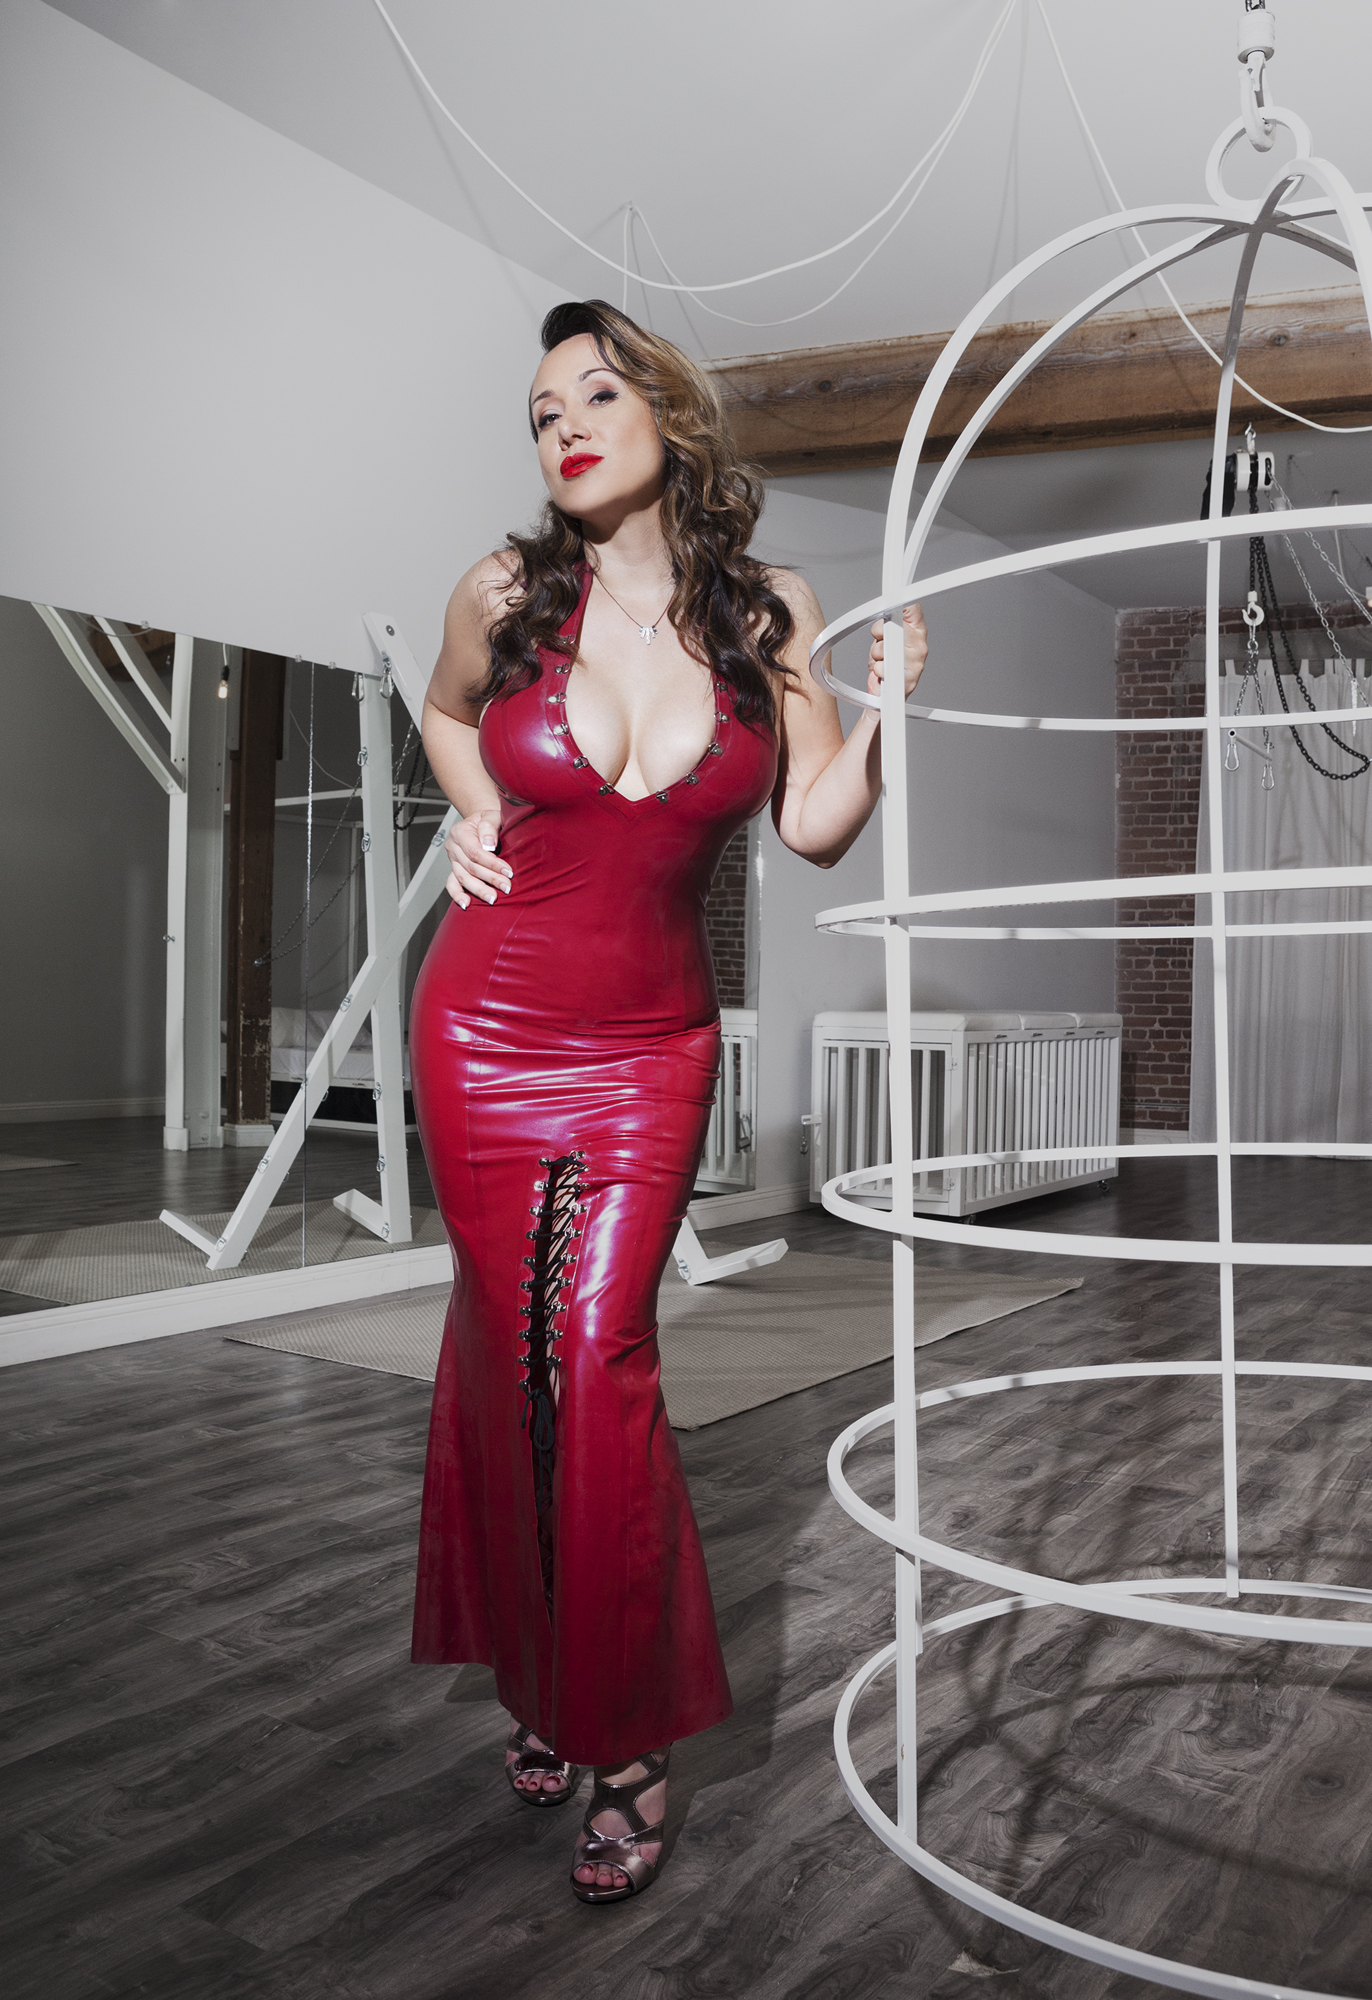 Gallery Domina Daria Dallas Dominatrix